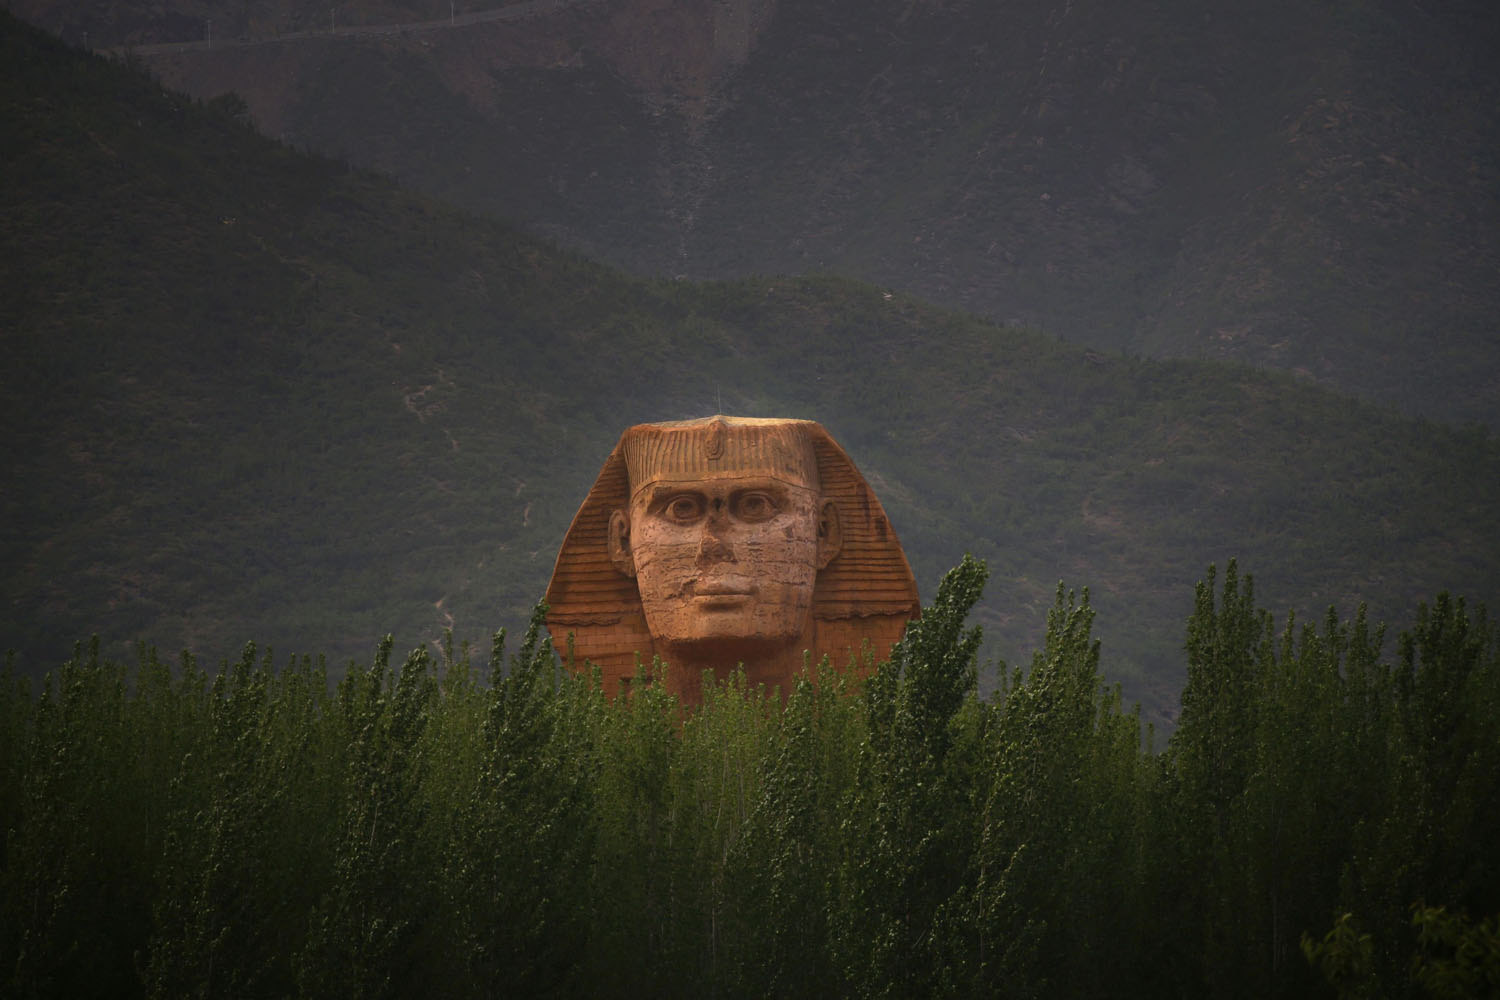 The head of a full-scale replica of the Sphinx, which is part of an unfinished theme park, behind trees on the outskirts of Shijiazhuang, Hebei province, China, on May 15, 2014.